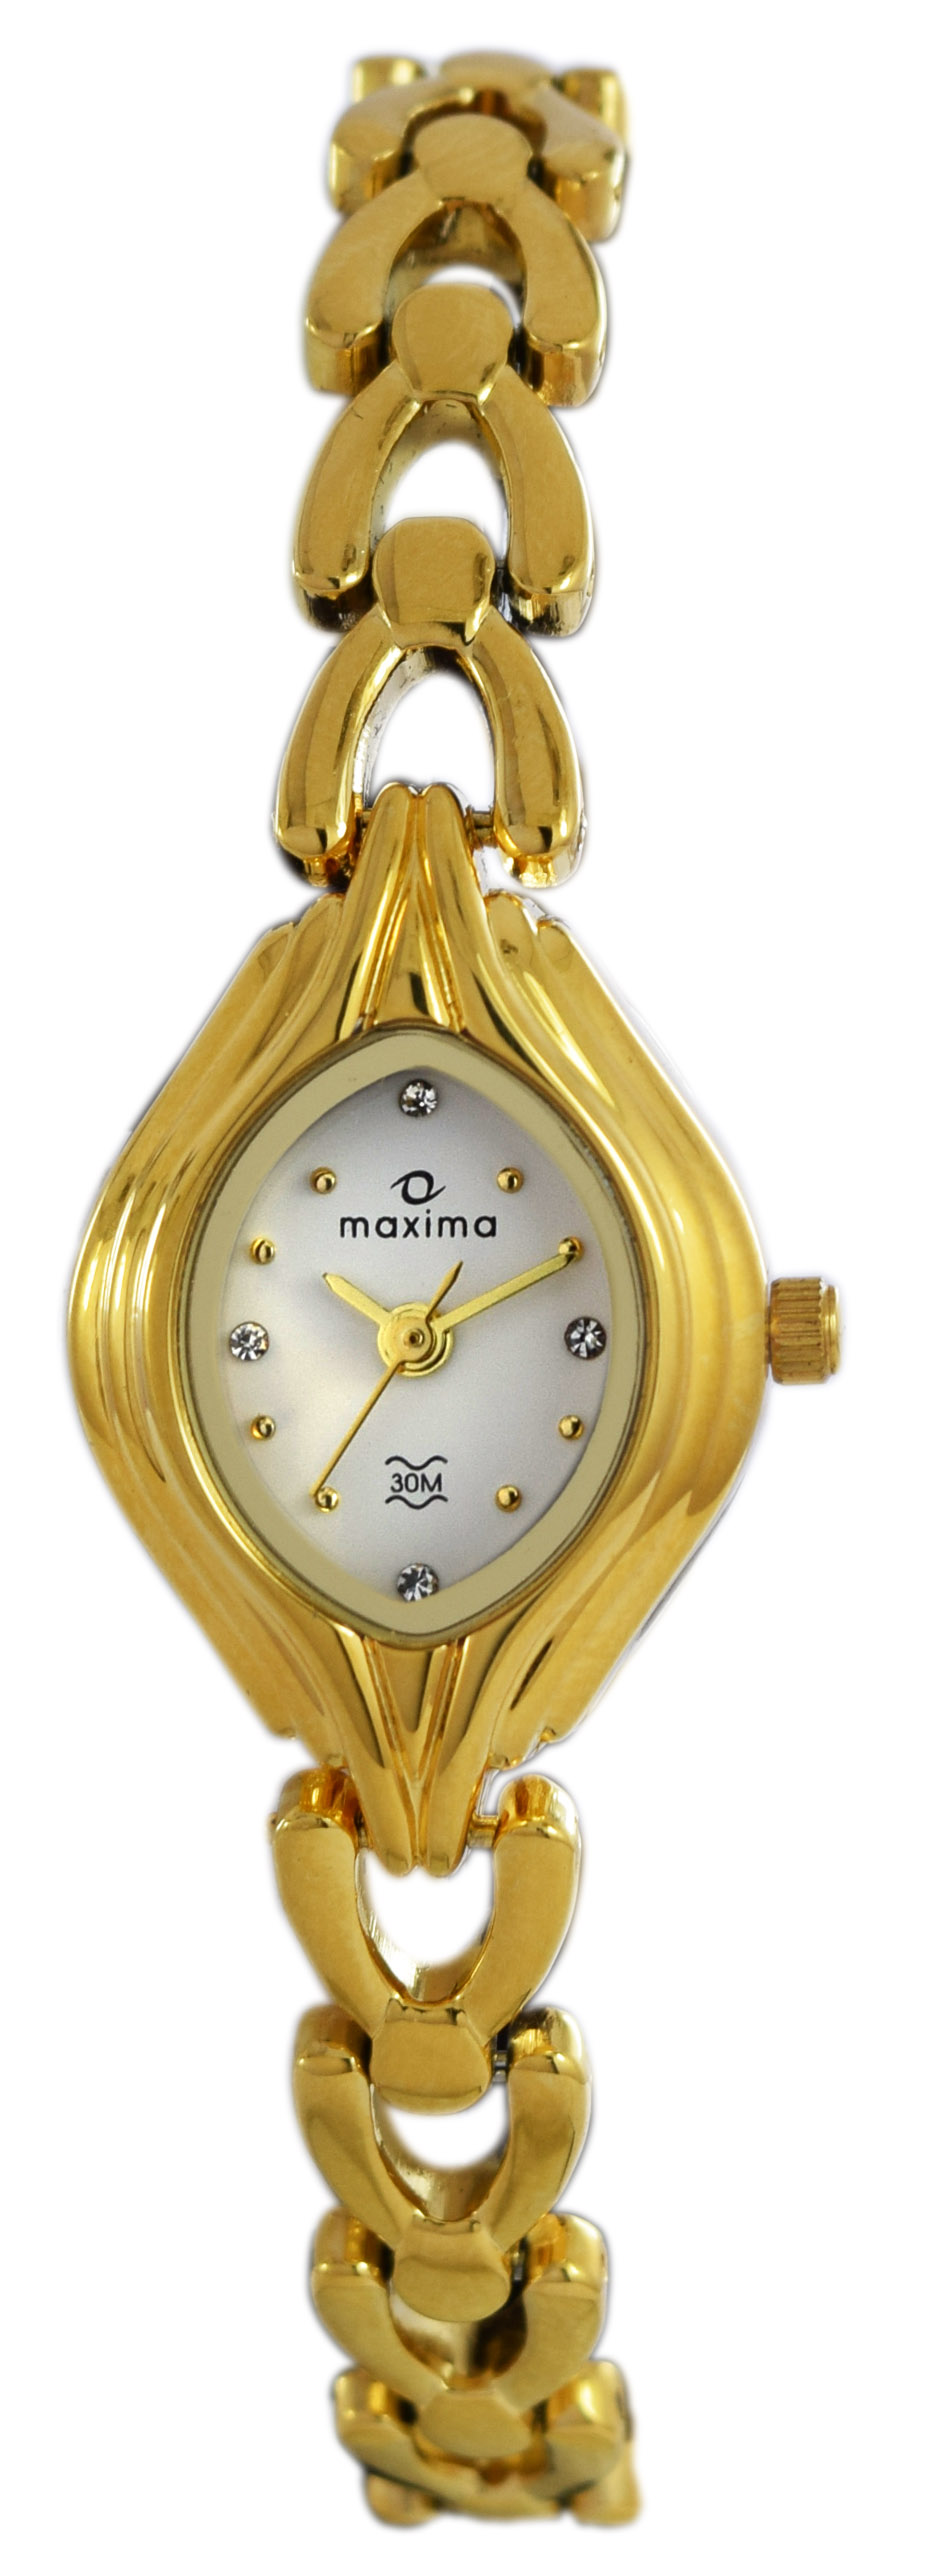 maxima gold analogue watches 04887bmly for prices